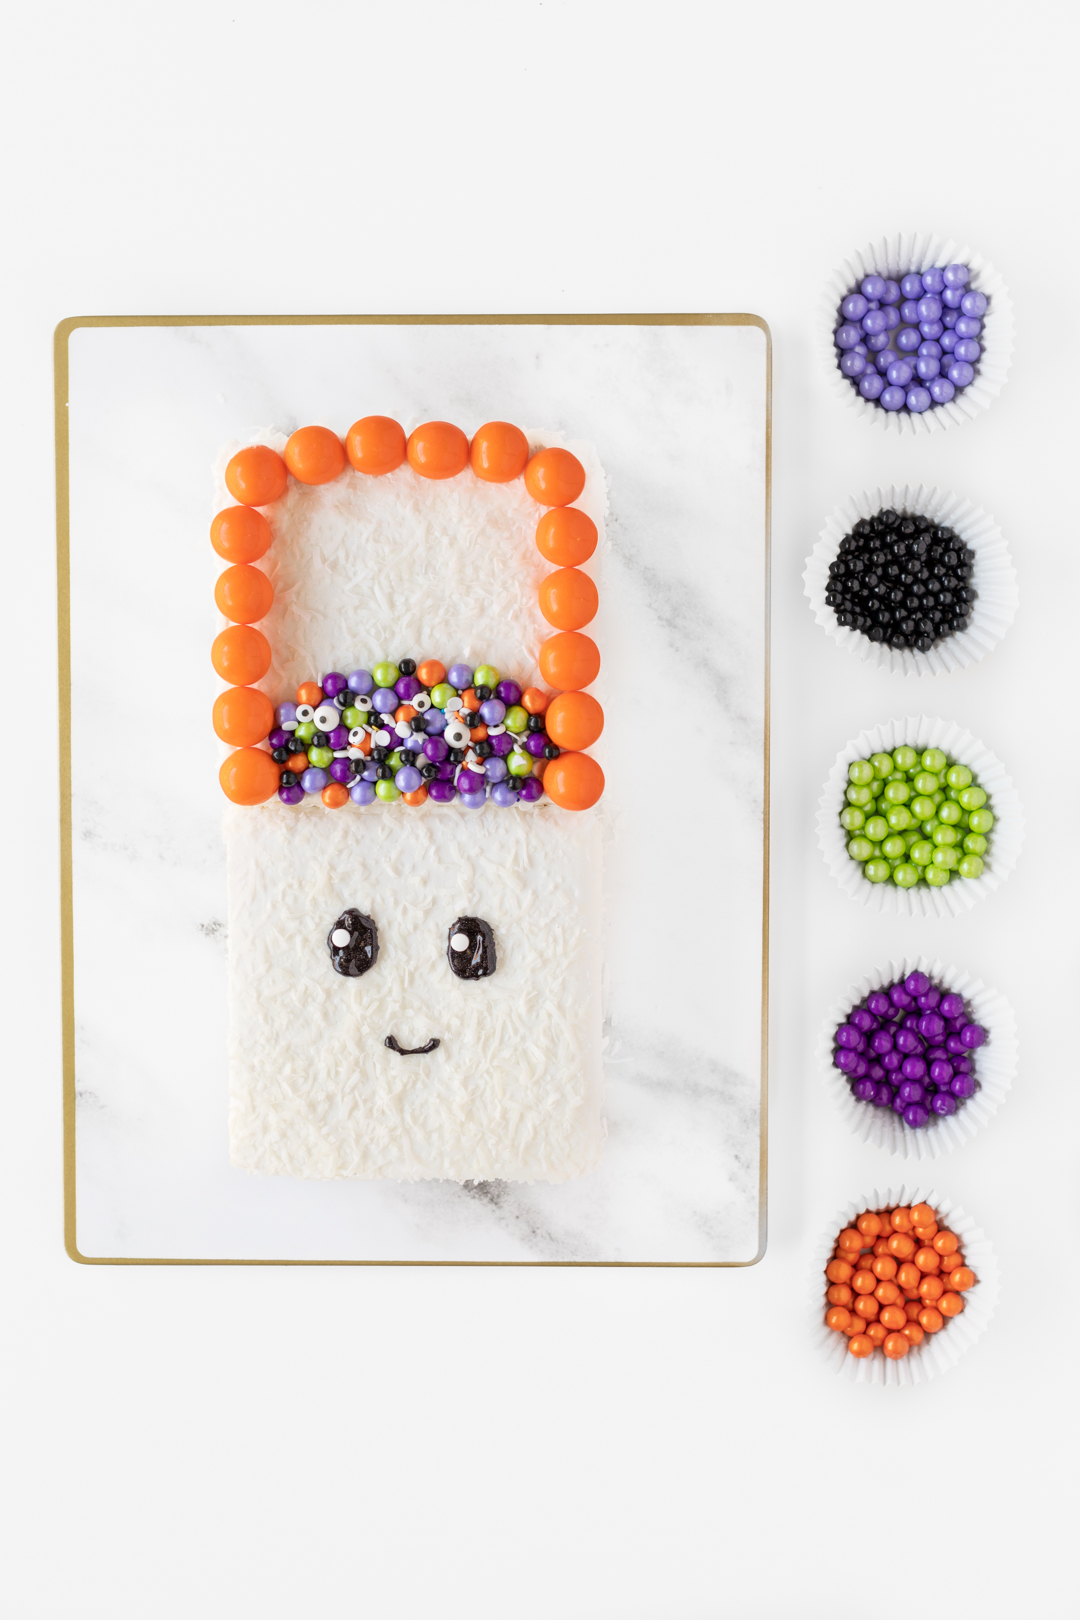 colorful candies to decorate halloween cake